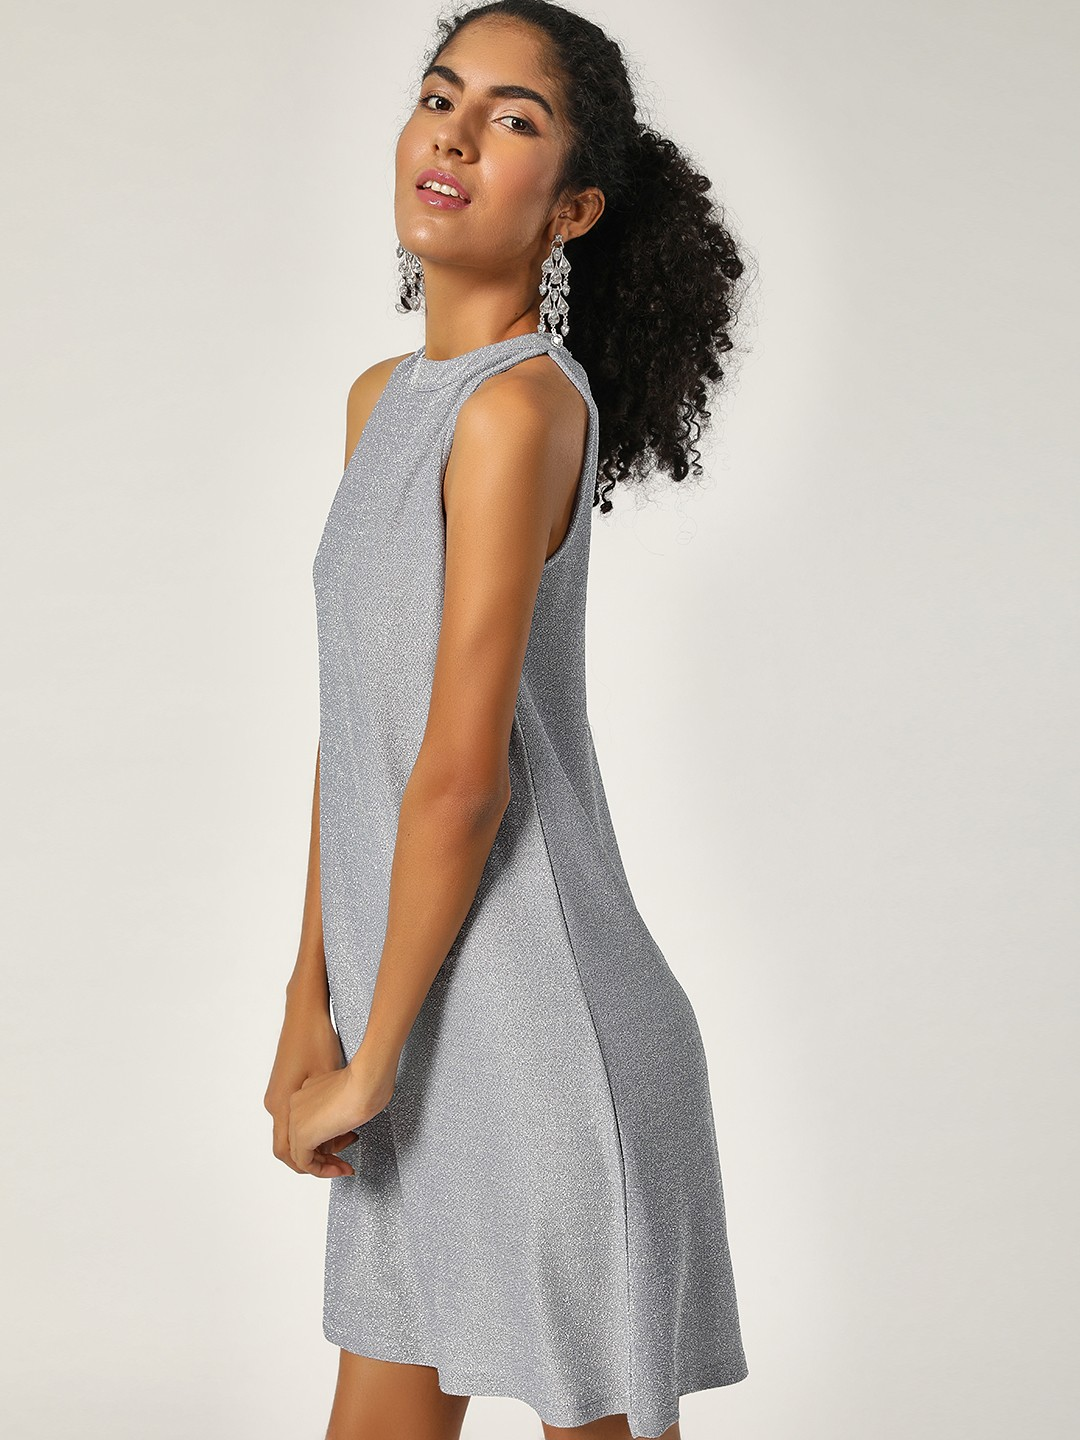 HEY Grey Shimmer Sleeveless Shift Dress 1